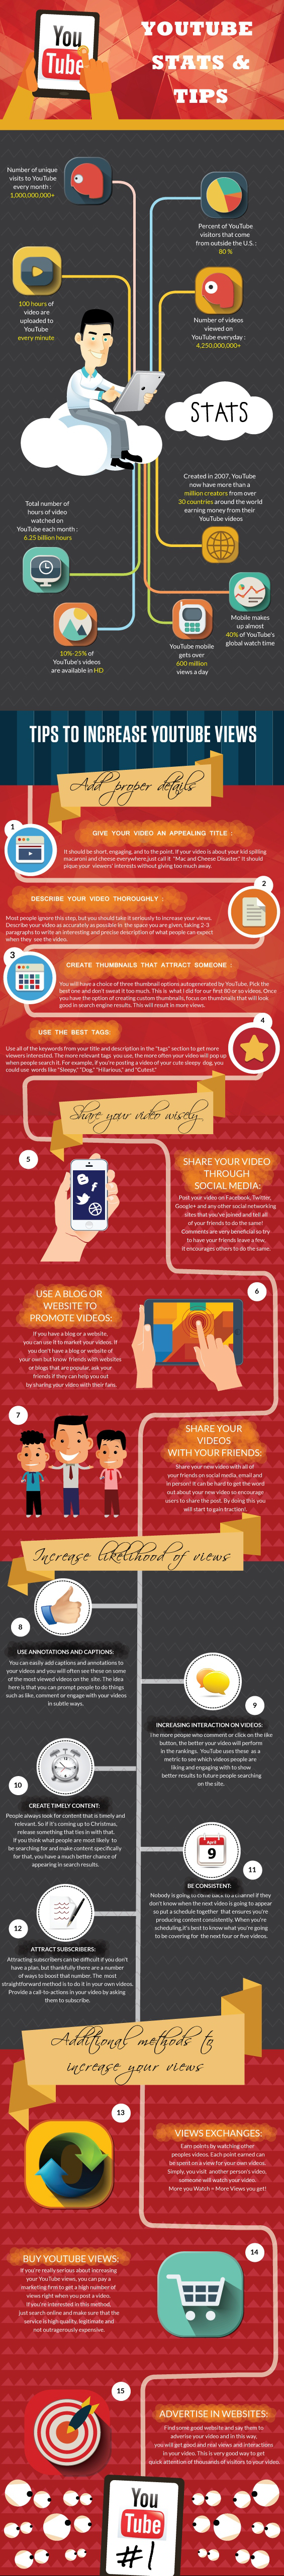 infografia-youtube